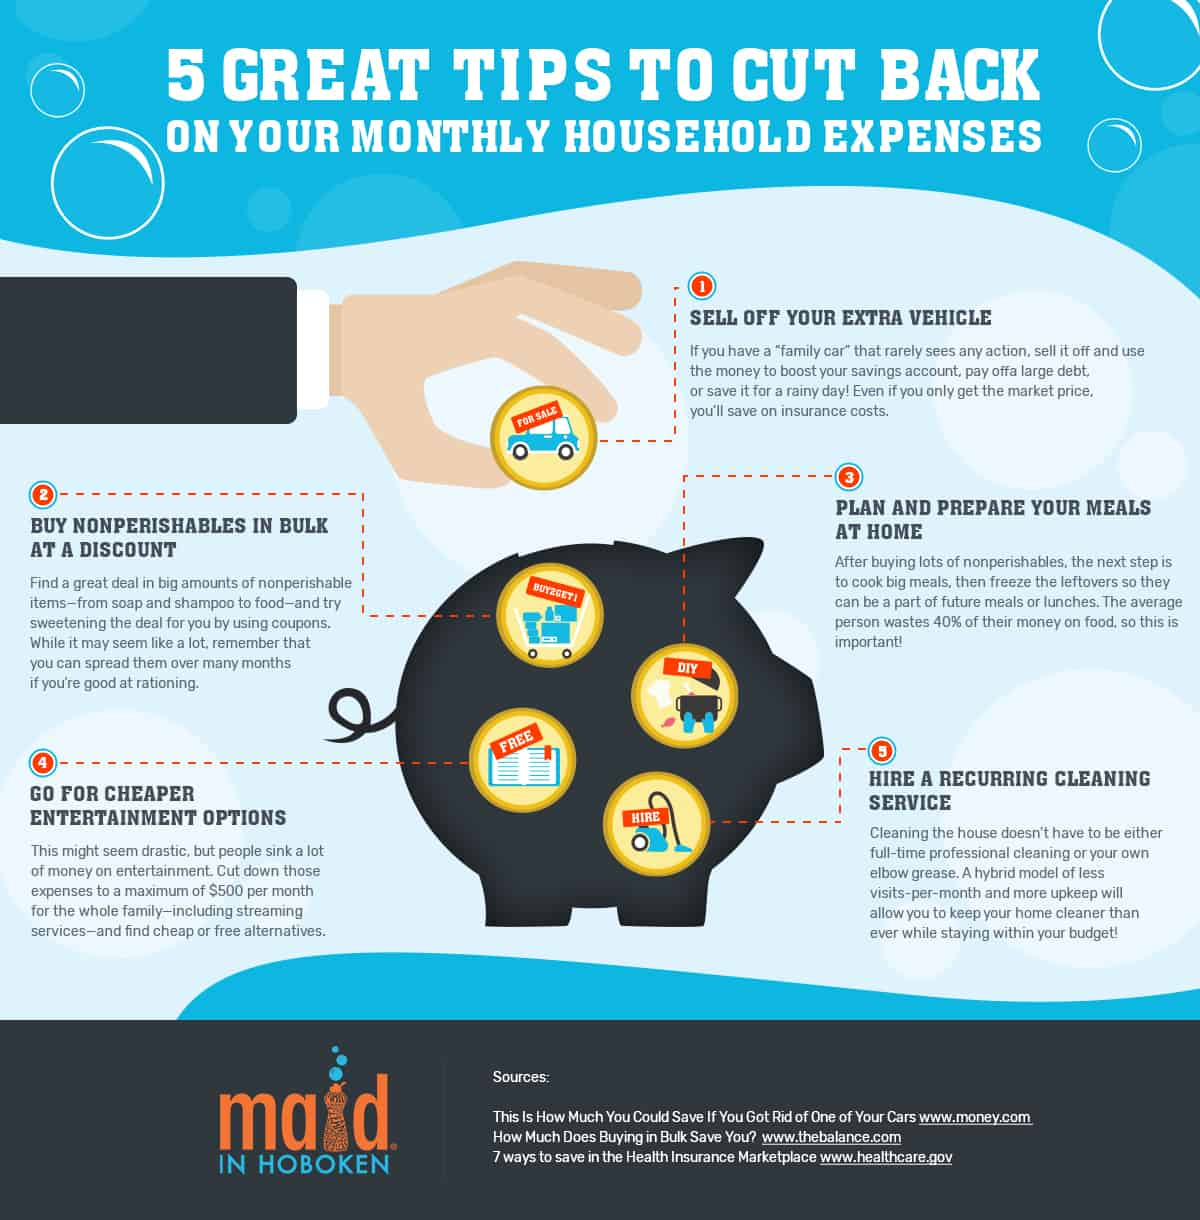 5 Great Tips to Cut Back on Your Monthly Household Expenses